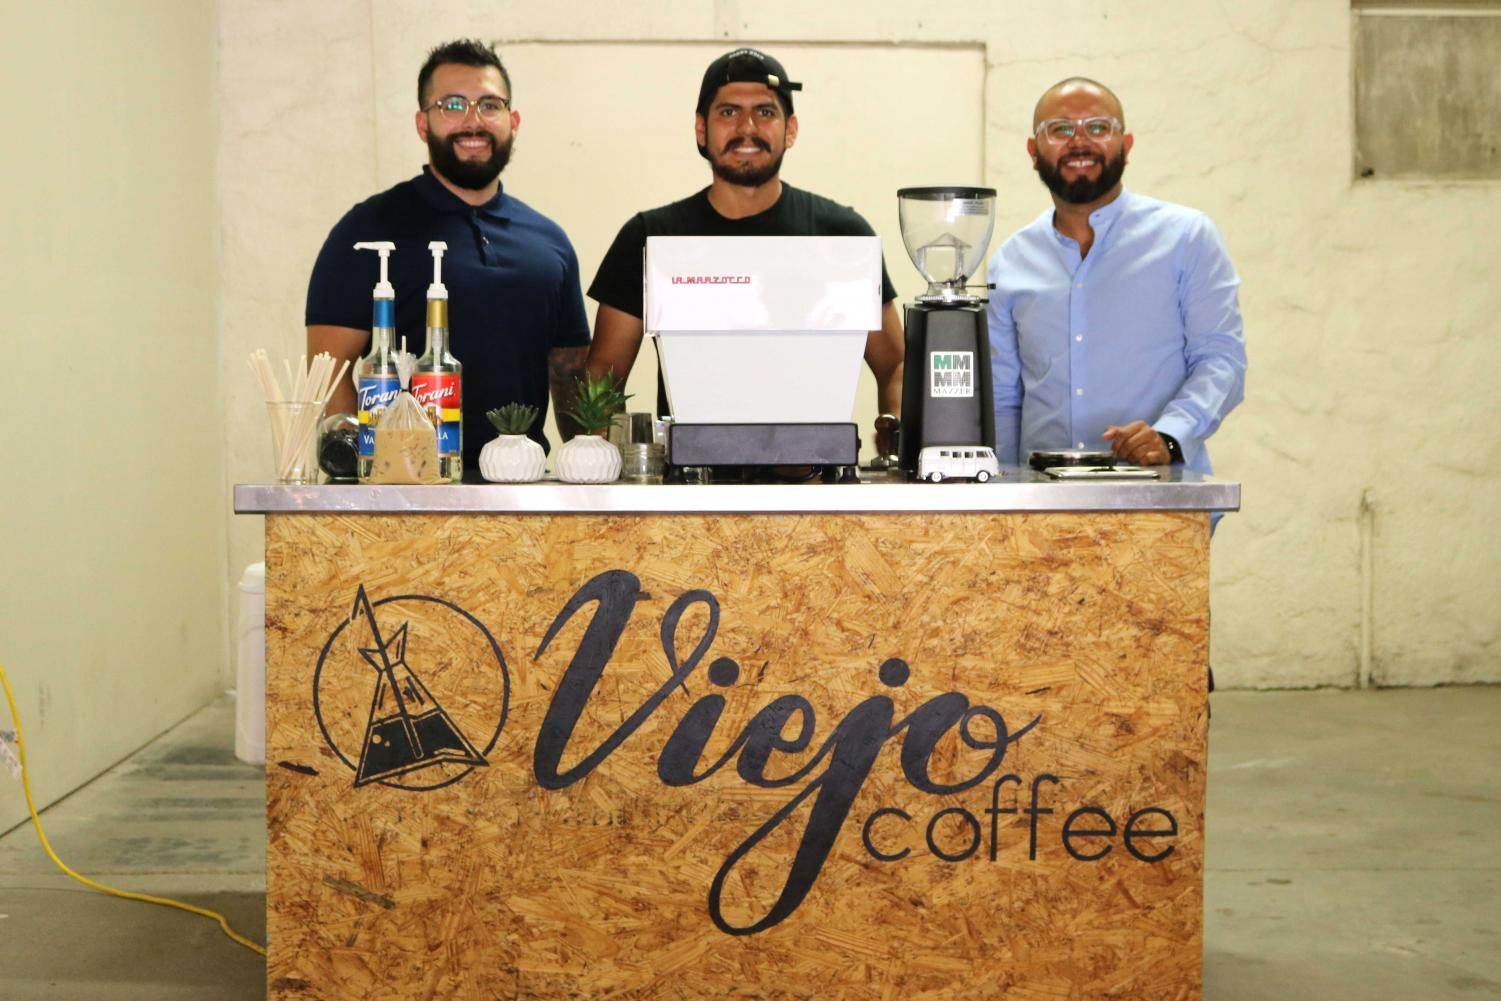 (From left to right) Ricardo Silva, Miguel De La Rocha, Jose Avélos are co-founders of Viejo Coffee.